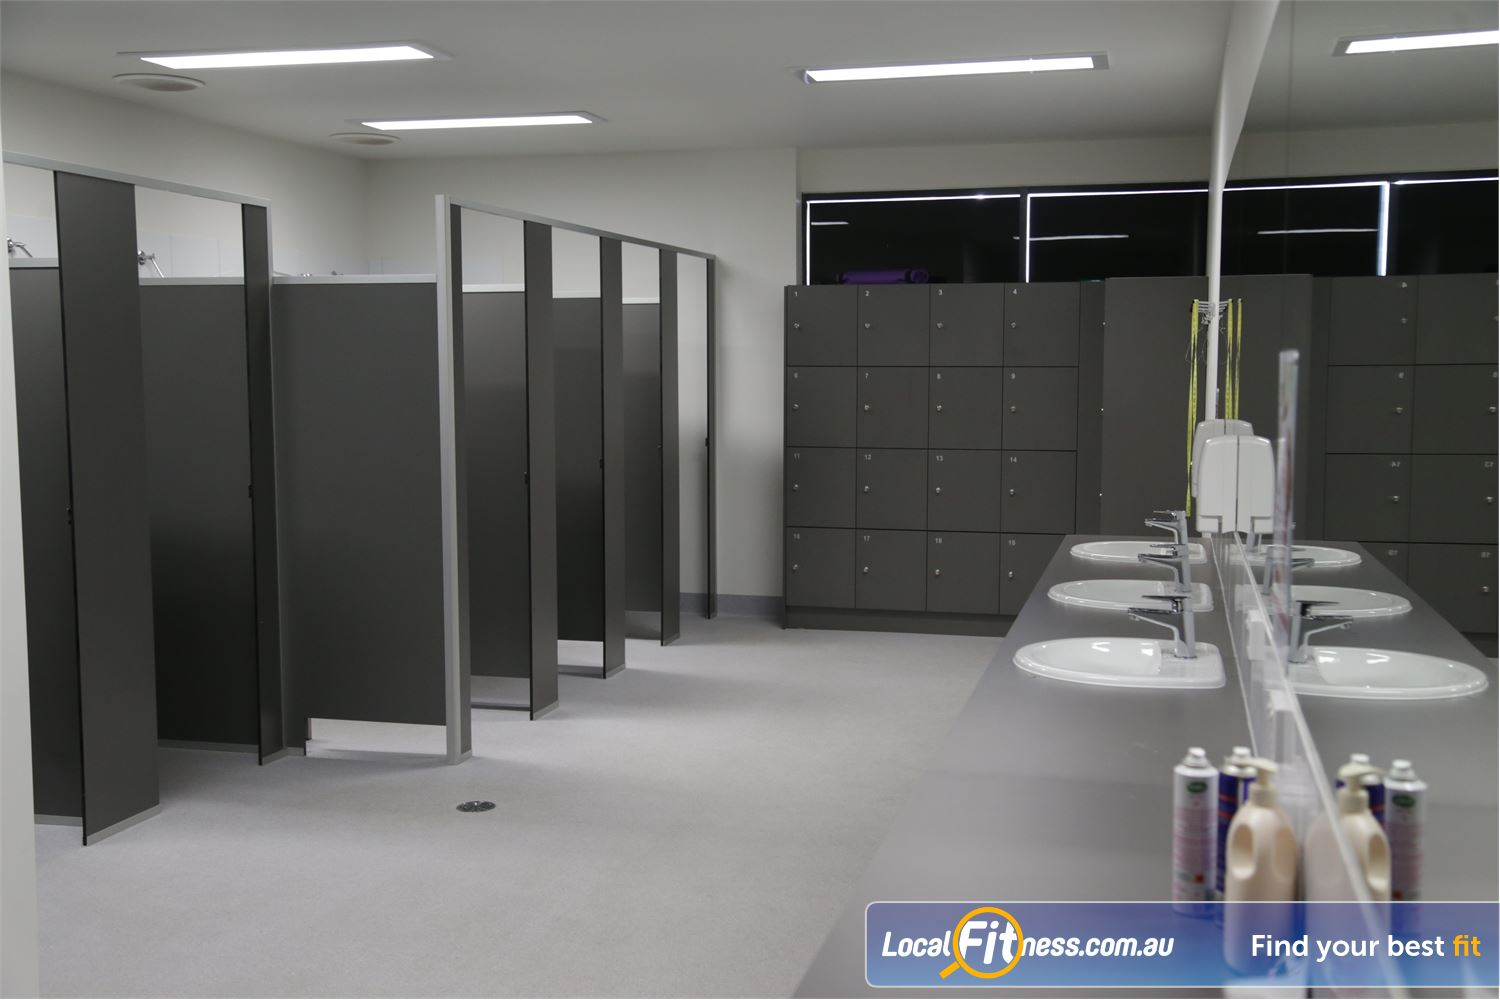 Fernwood Fitness Shepparton The new and pristine beautifully appointed change rooms.